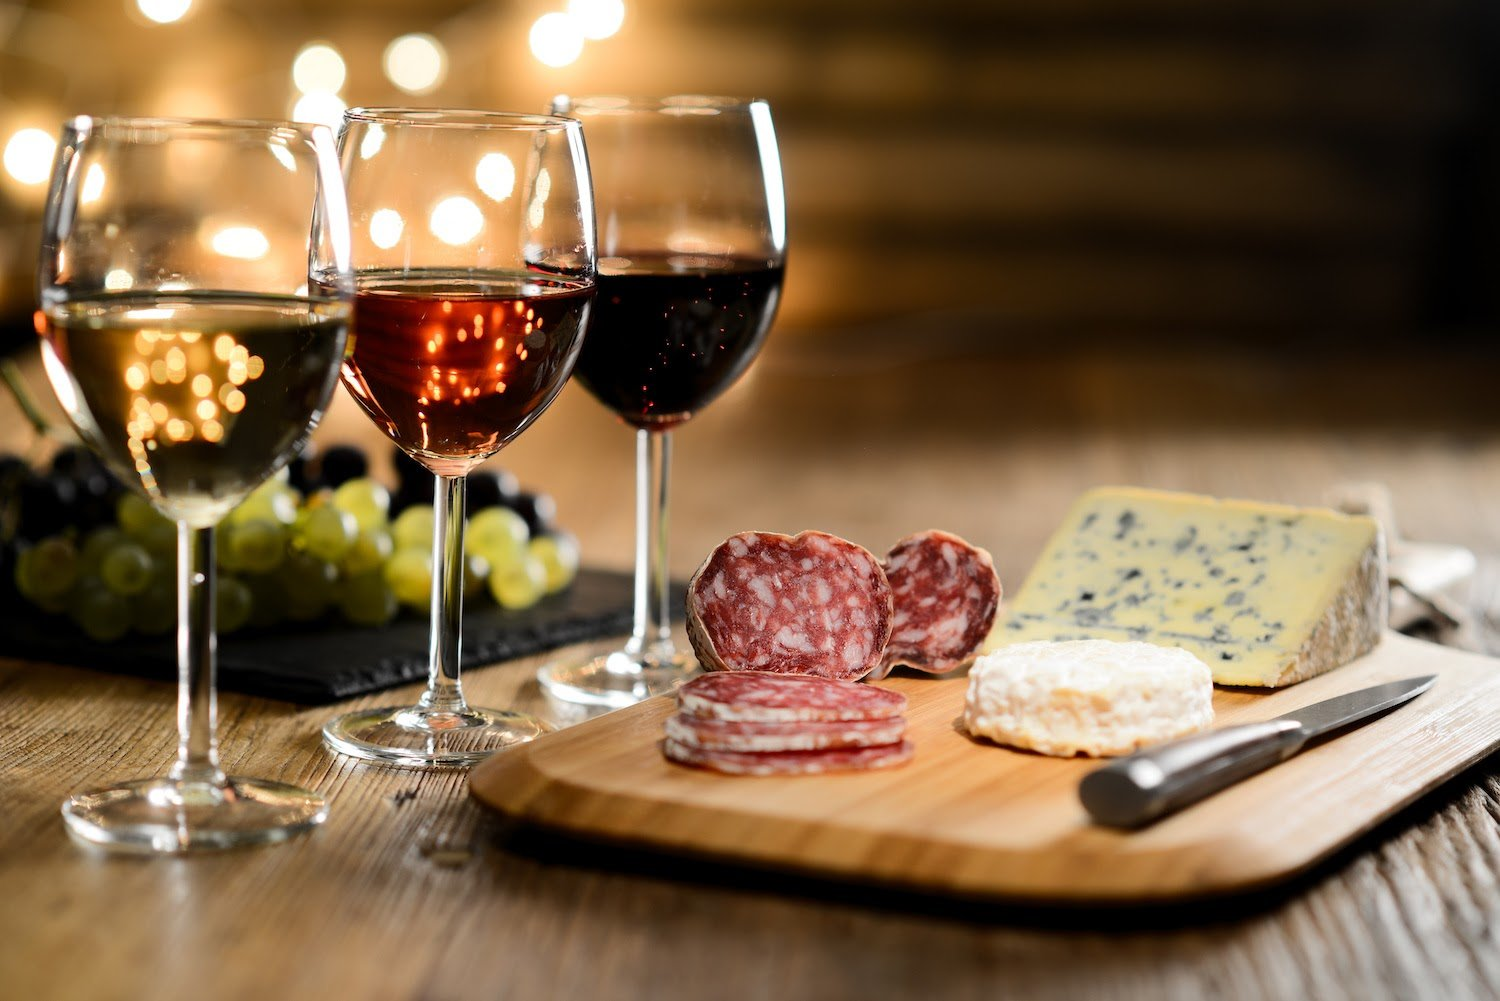 Low Histamine Diet: Three glasses of wine with cheese on a table